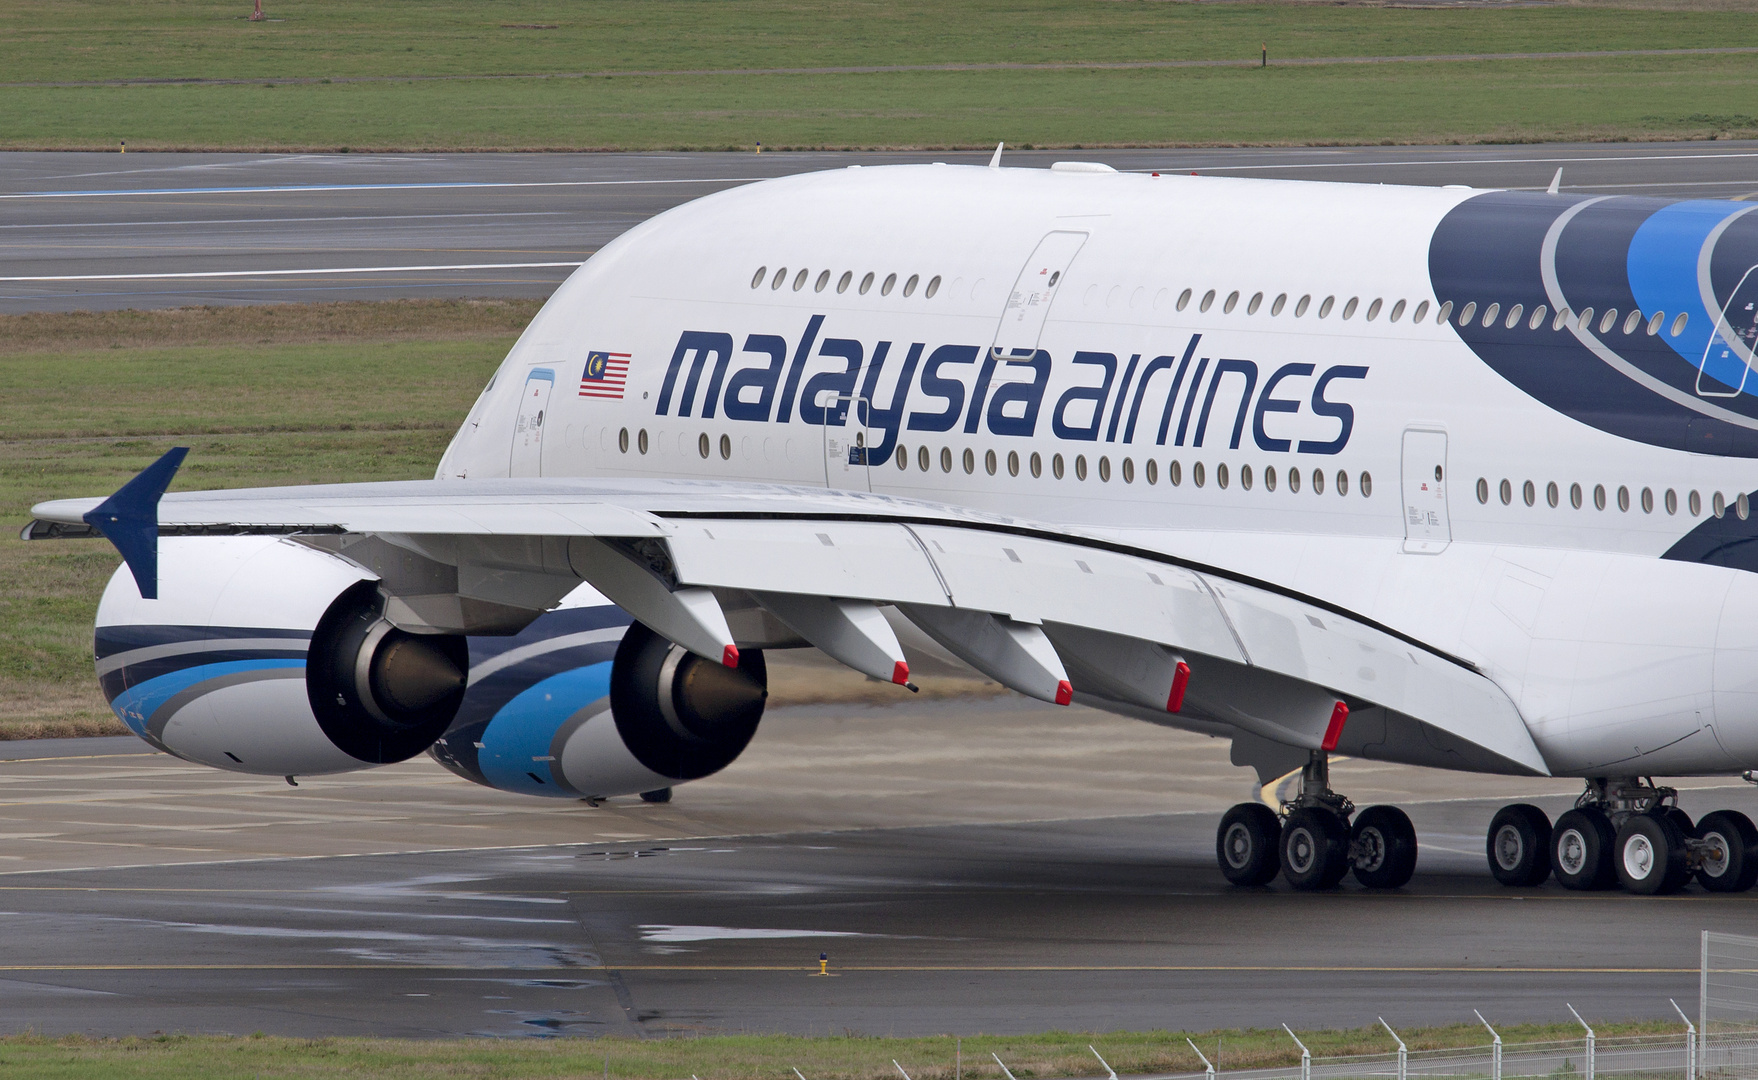 Malaysia Airlines A380 at Toulouse/Blagnac